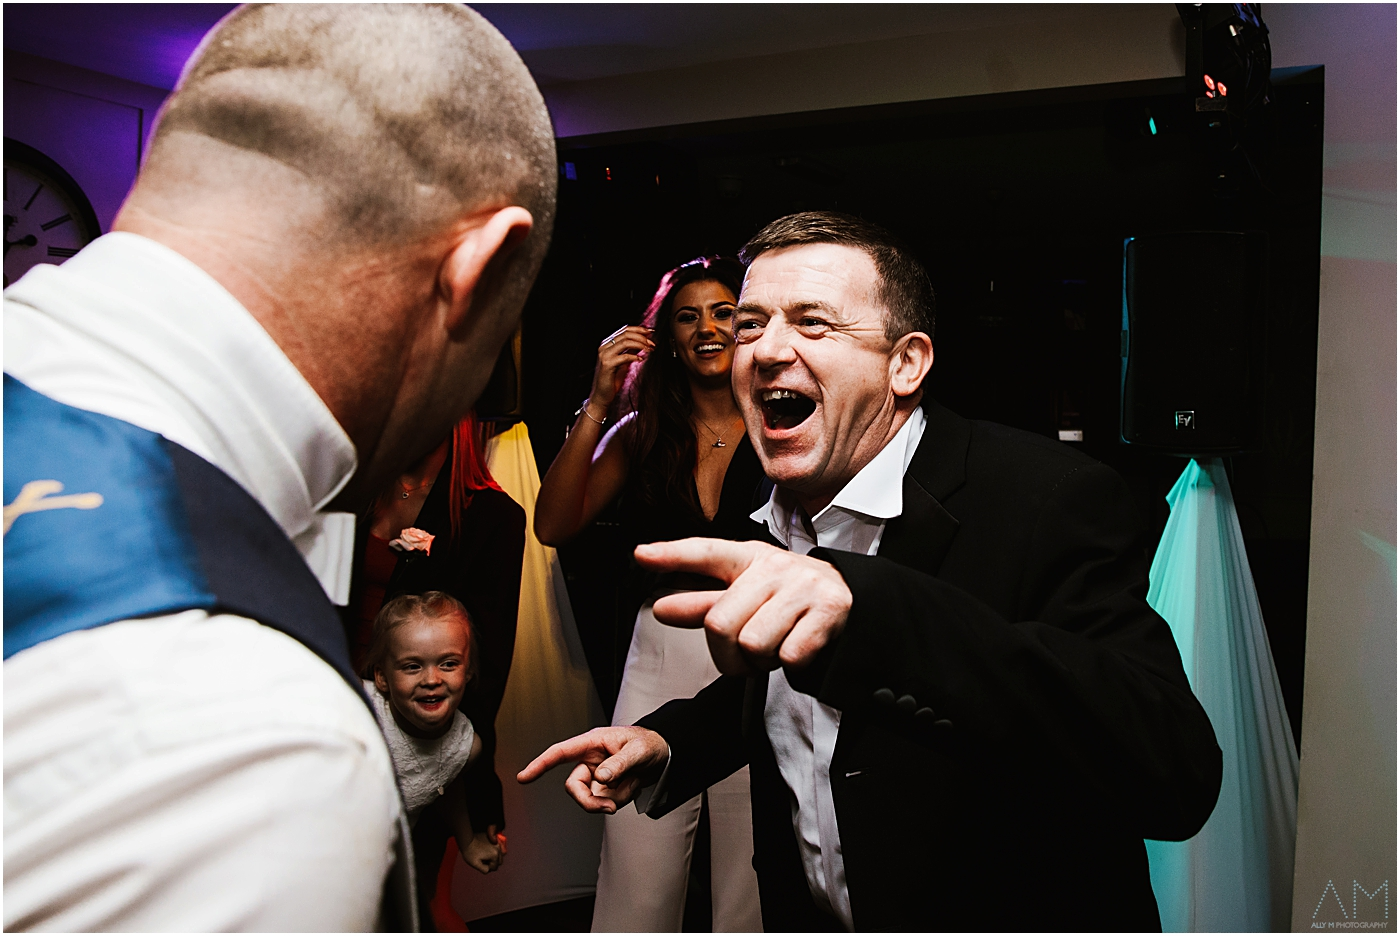 Grooms brother laughing